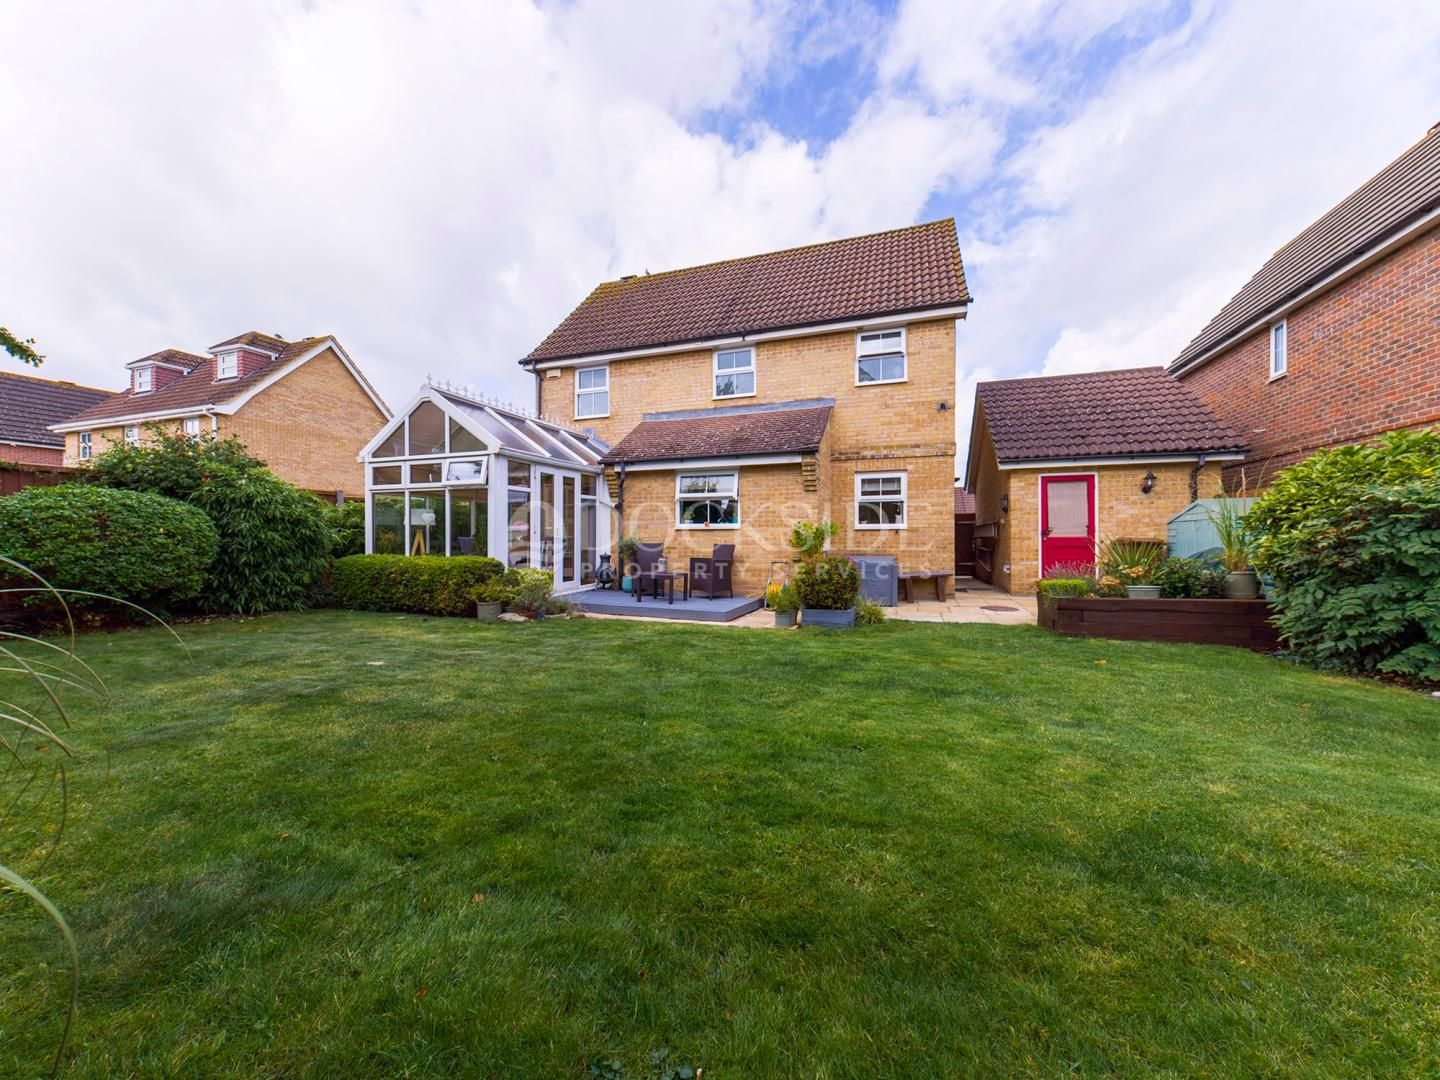 3 bed house for sale in Haven Way  - Property Image 2